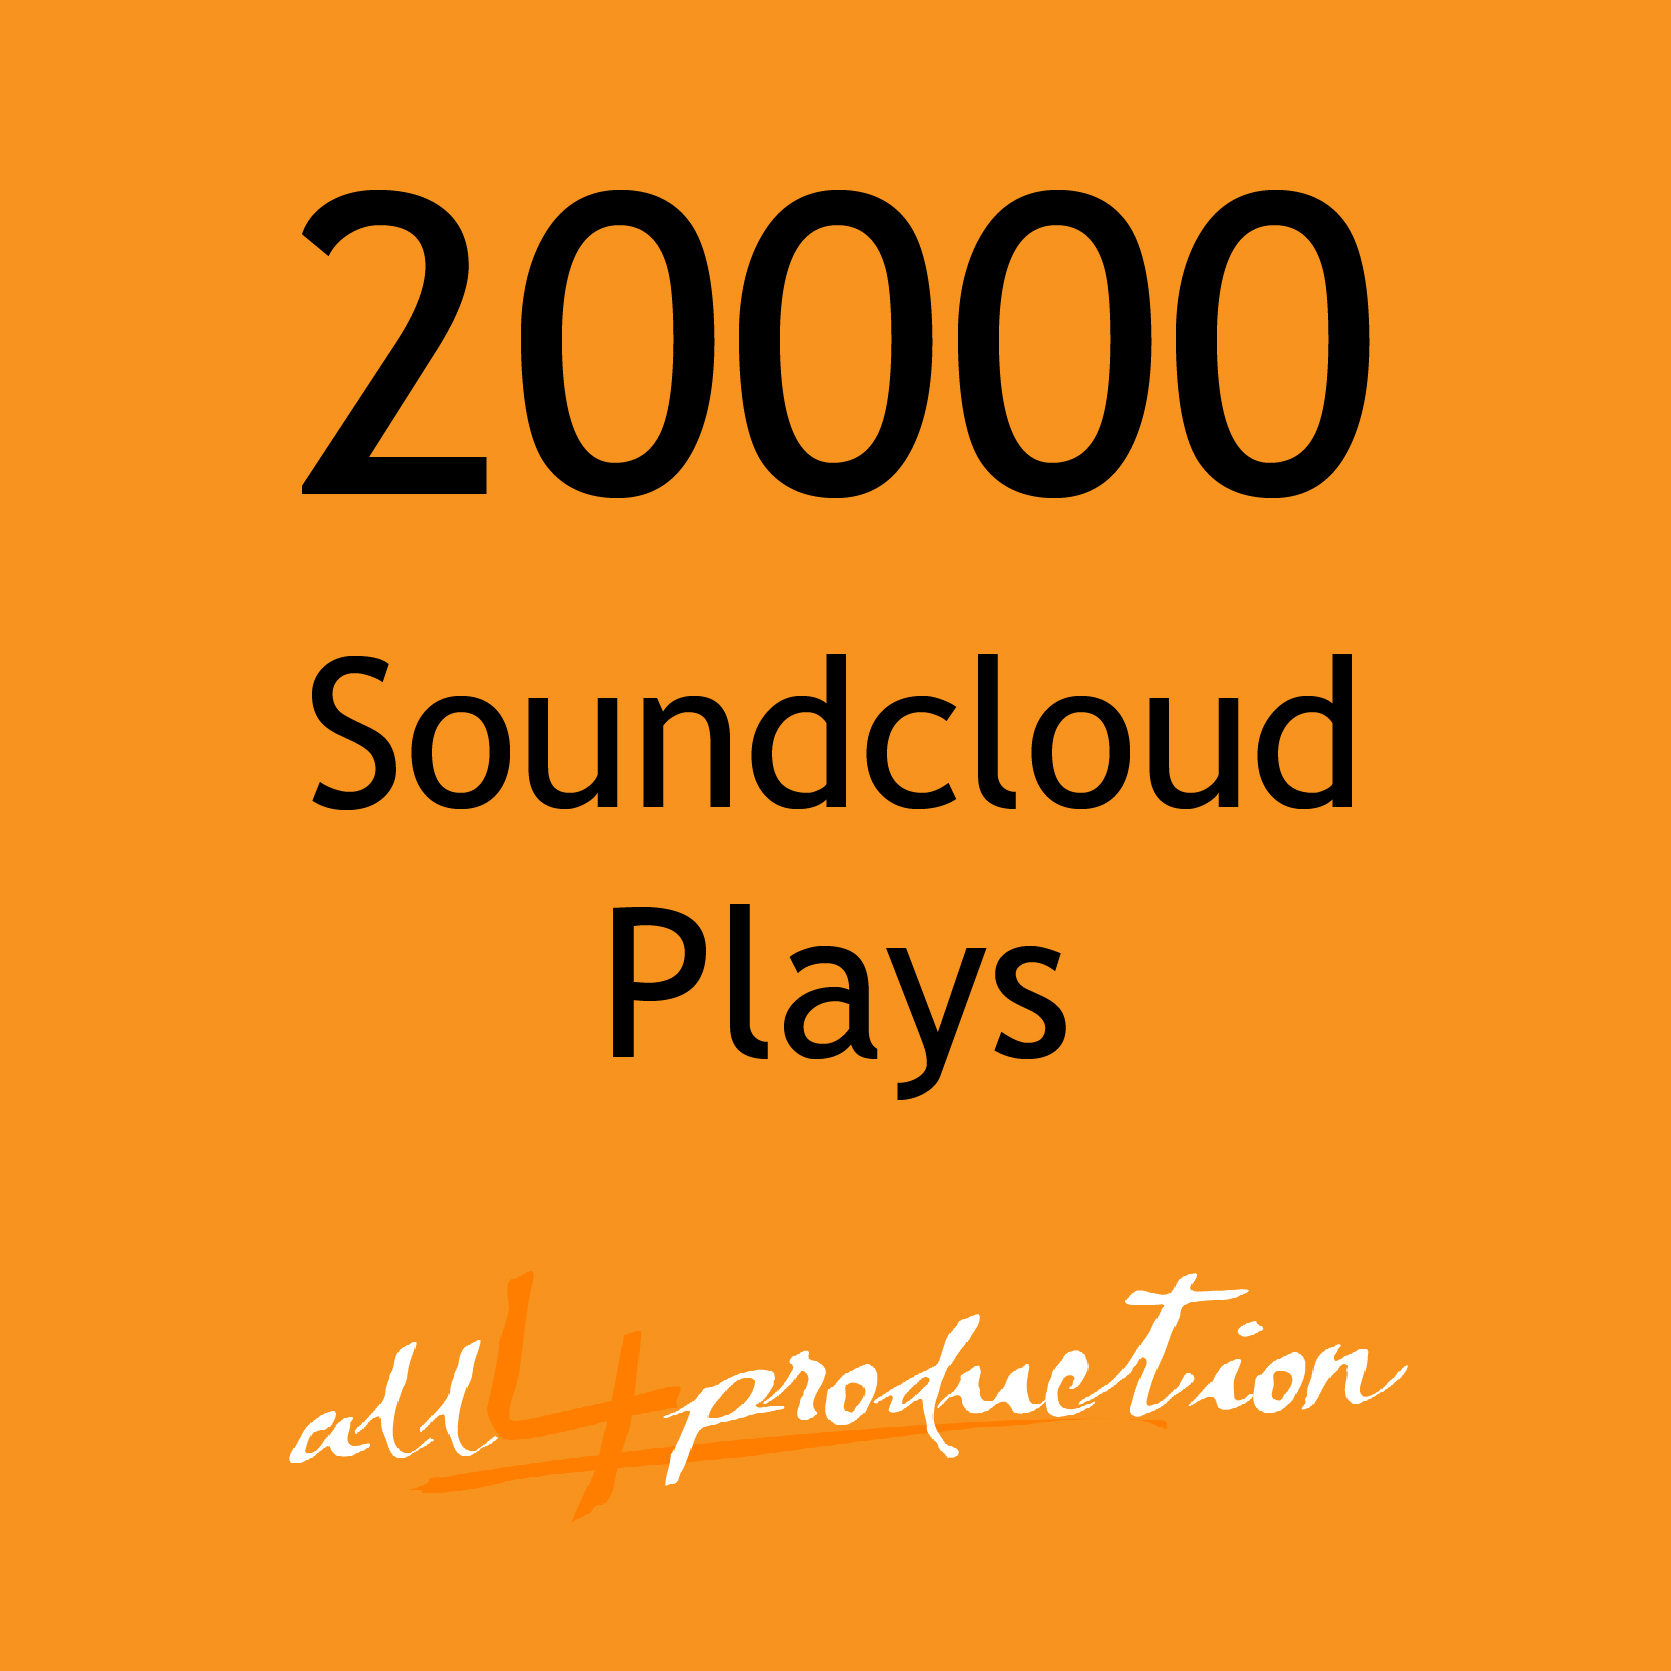 AMAZING!! 20.000 Soundcloud Plays in just 24 Hours Max Split on 4 Tracks MEGA EXPRESS SERVICE